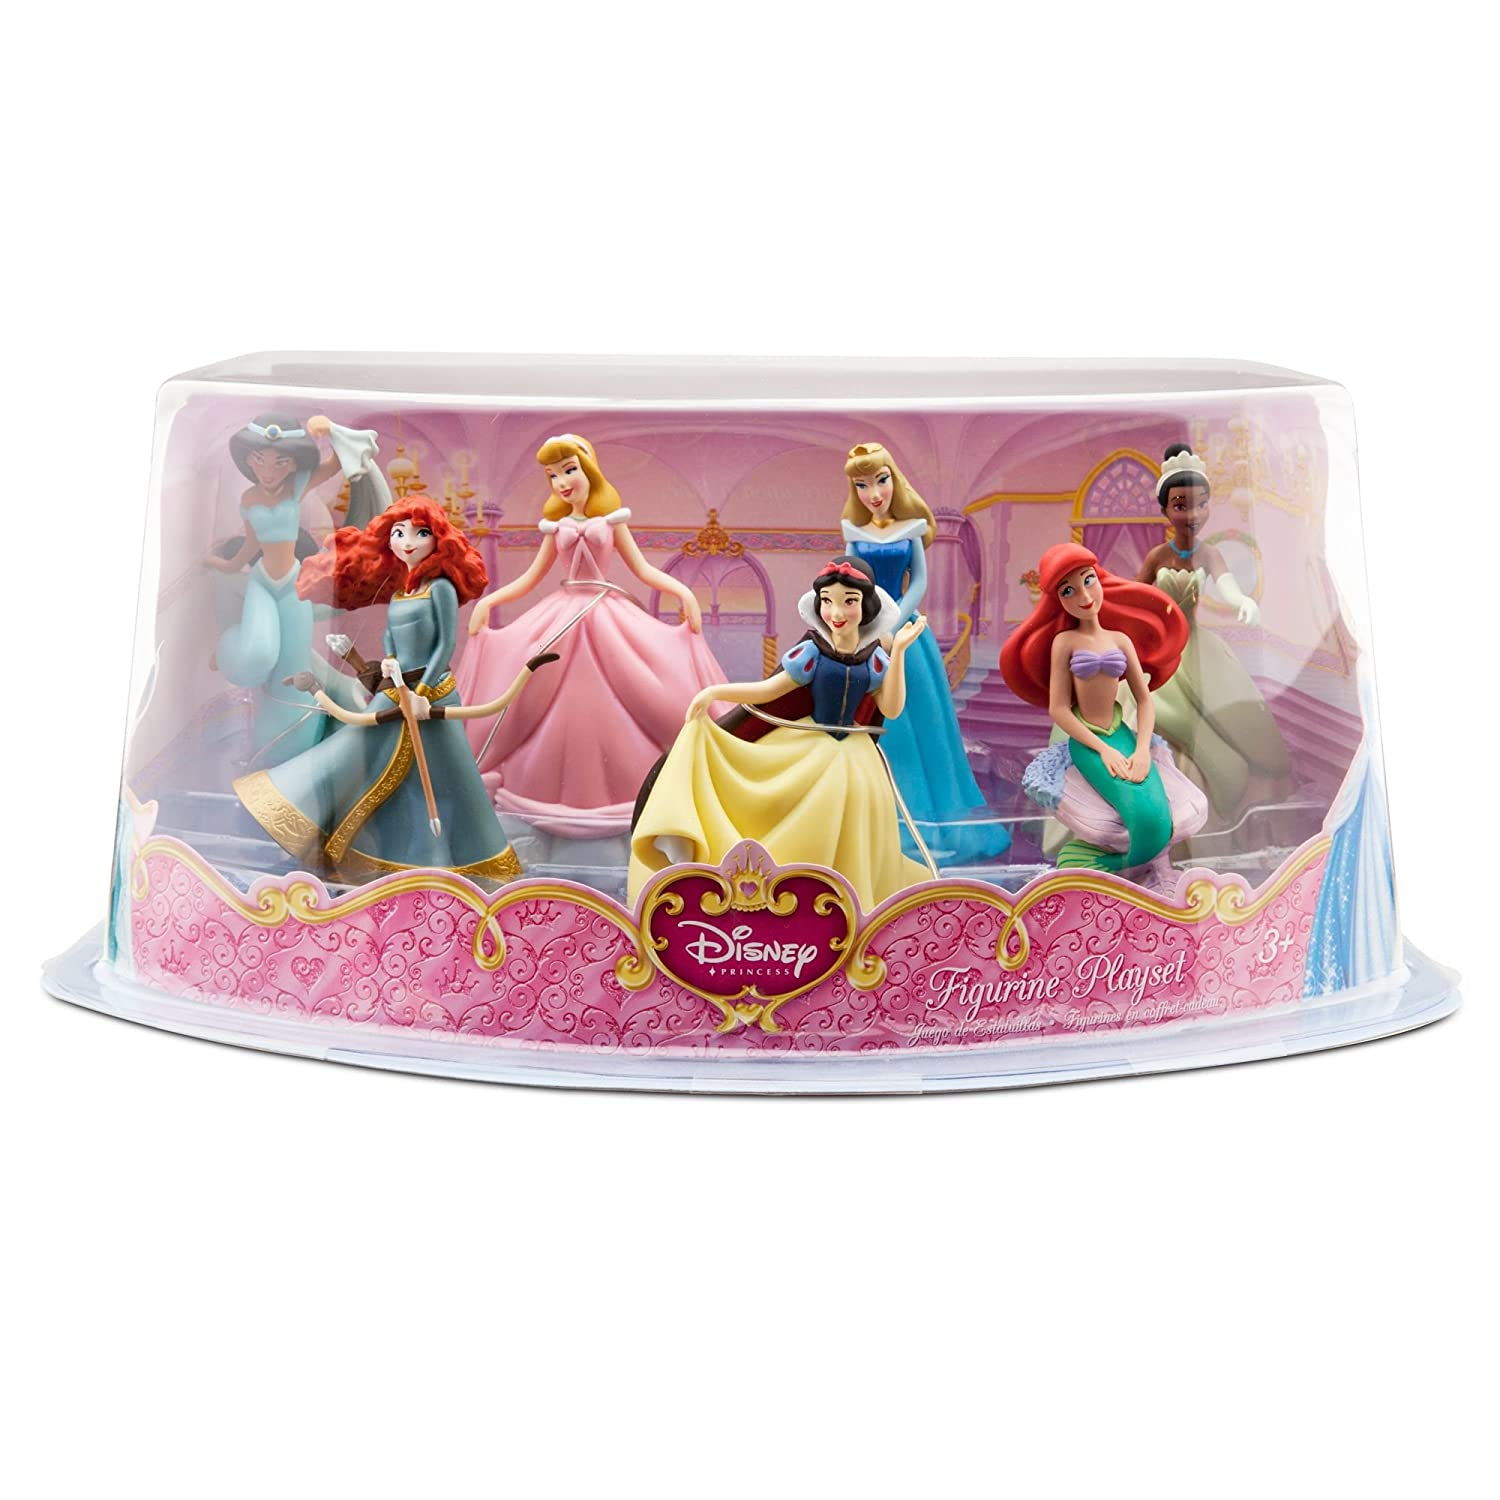 Amazoncom Disney Princess MiniFigure Play Set 1 Toys Games